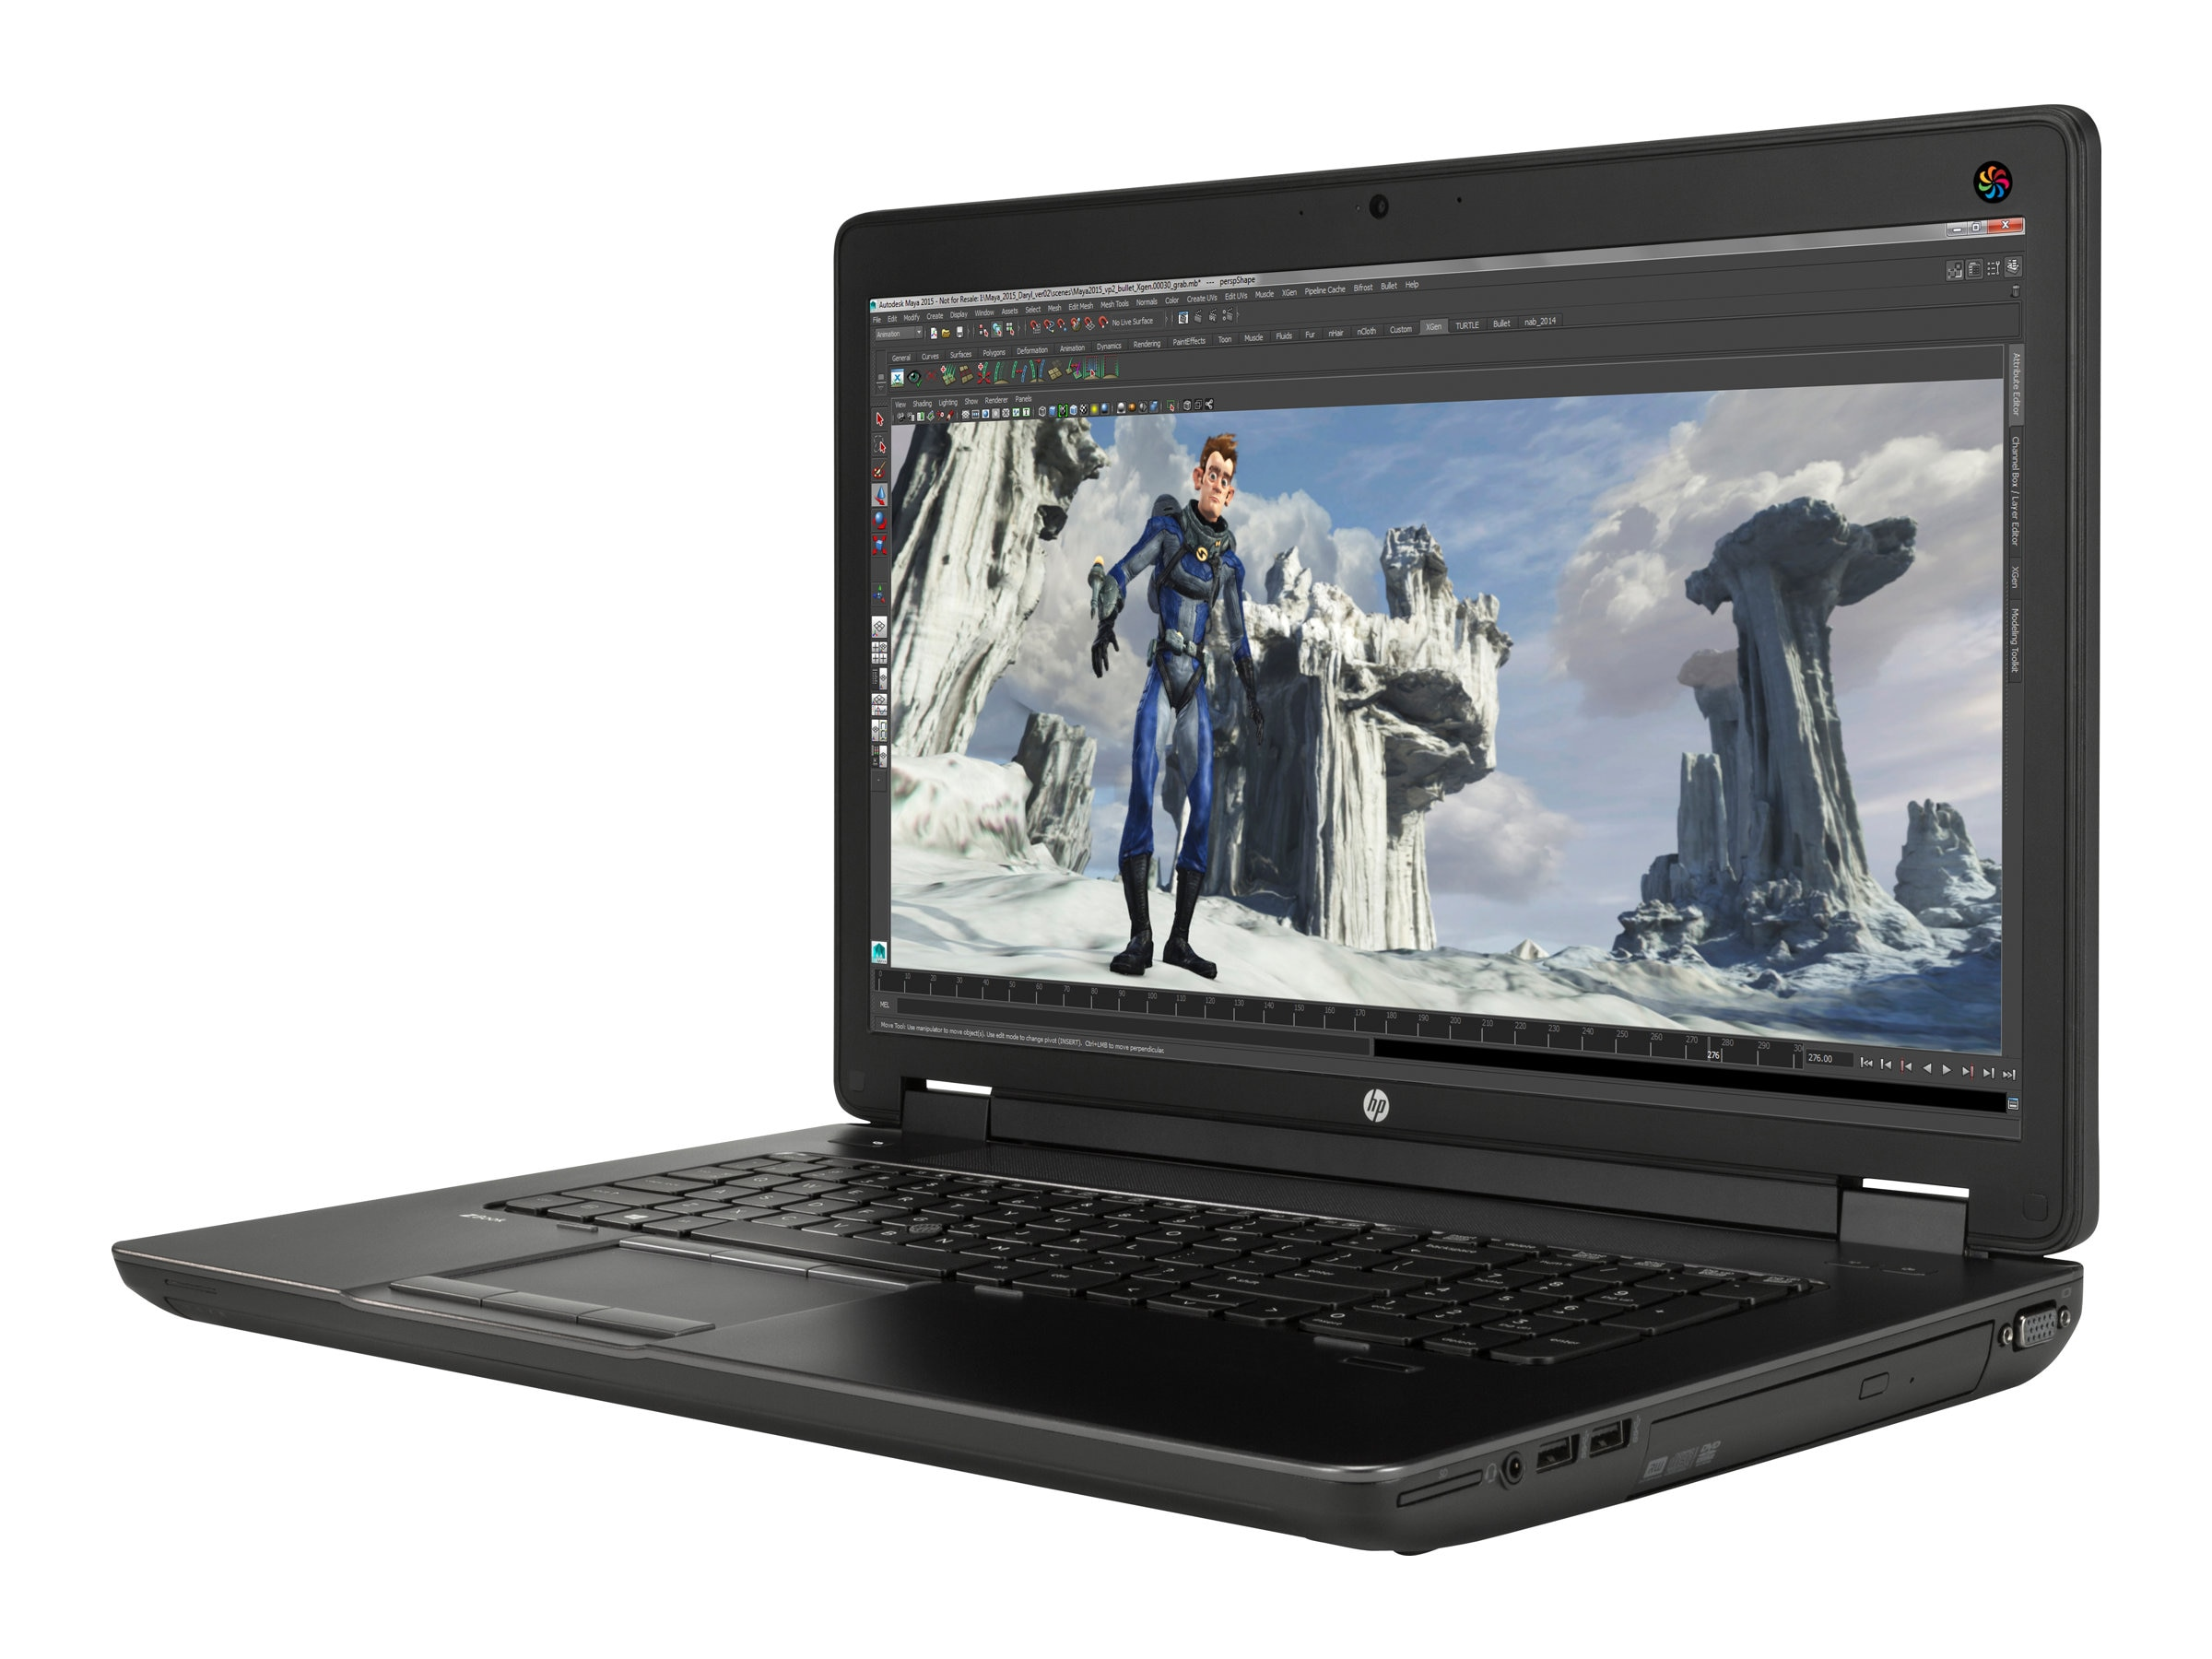 HP Smart Buy ZBook 17 G2 Core i7-4710MQ 2.5GHz 8GB 256GB SSD DVD ac BT FR K2200M 17.3 FHD W7P64-W8.1P, K4K42UT#ABA, 18370923, Workstations - Mobile